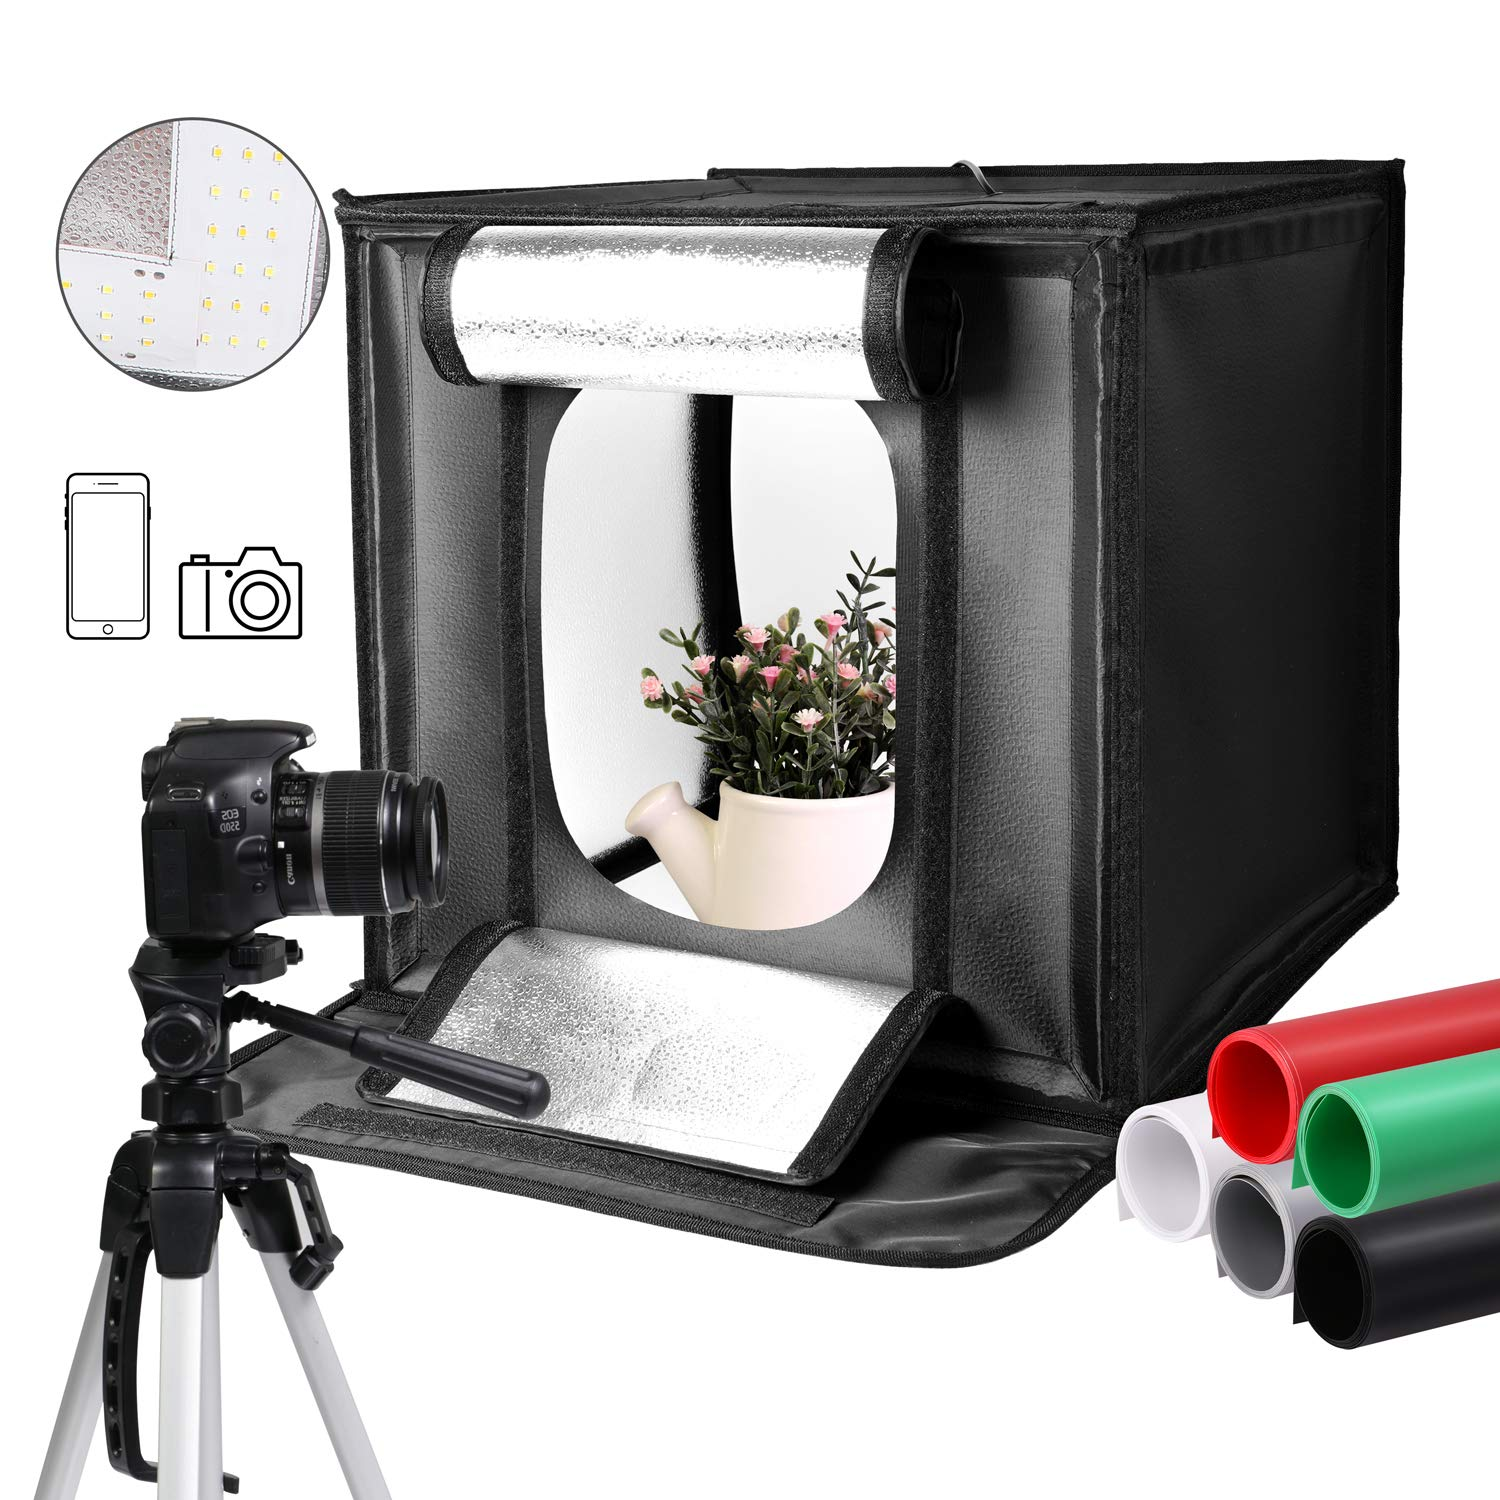 SH Photography Light Box 40 x 40 cm /16 x 16 Inch Adjustable Brightness 5500KRing Continuous Lighting LED Light Portable Foldable Shooting Tents Kit 5 Color Background by SH